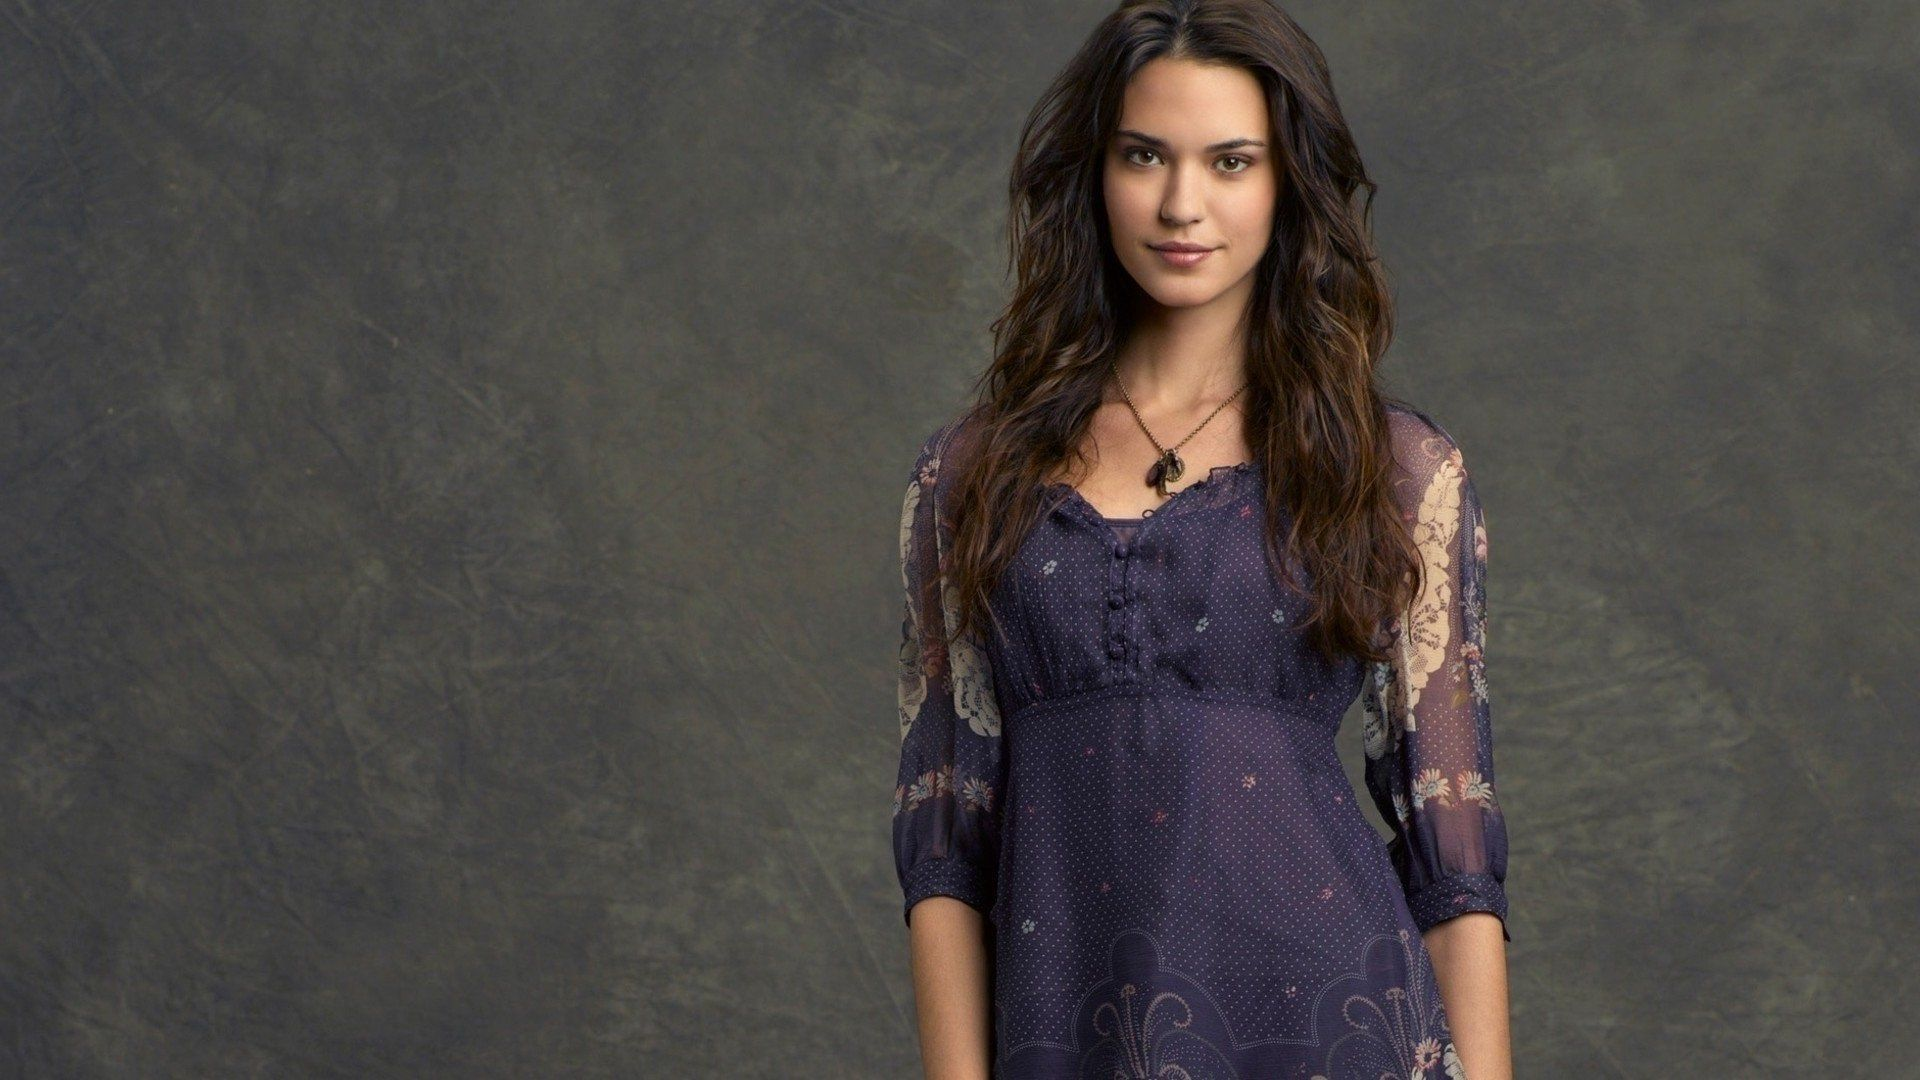 1920x1080 Odette Annable Free Download Wallpaper For Pc Download Wallpapers For Pc Odette Annable Free Download